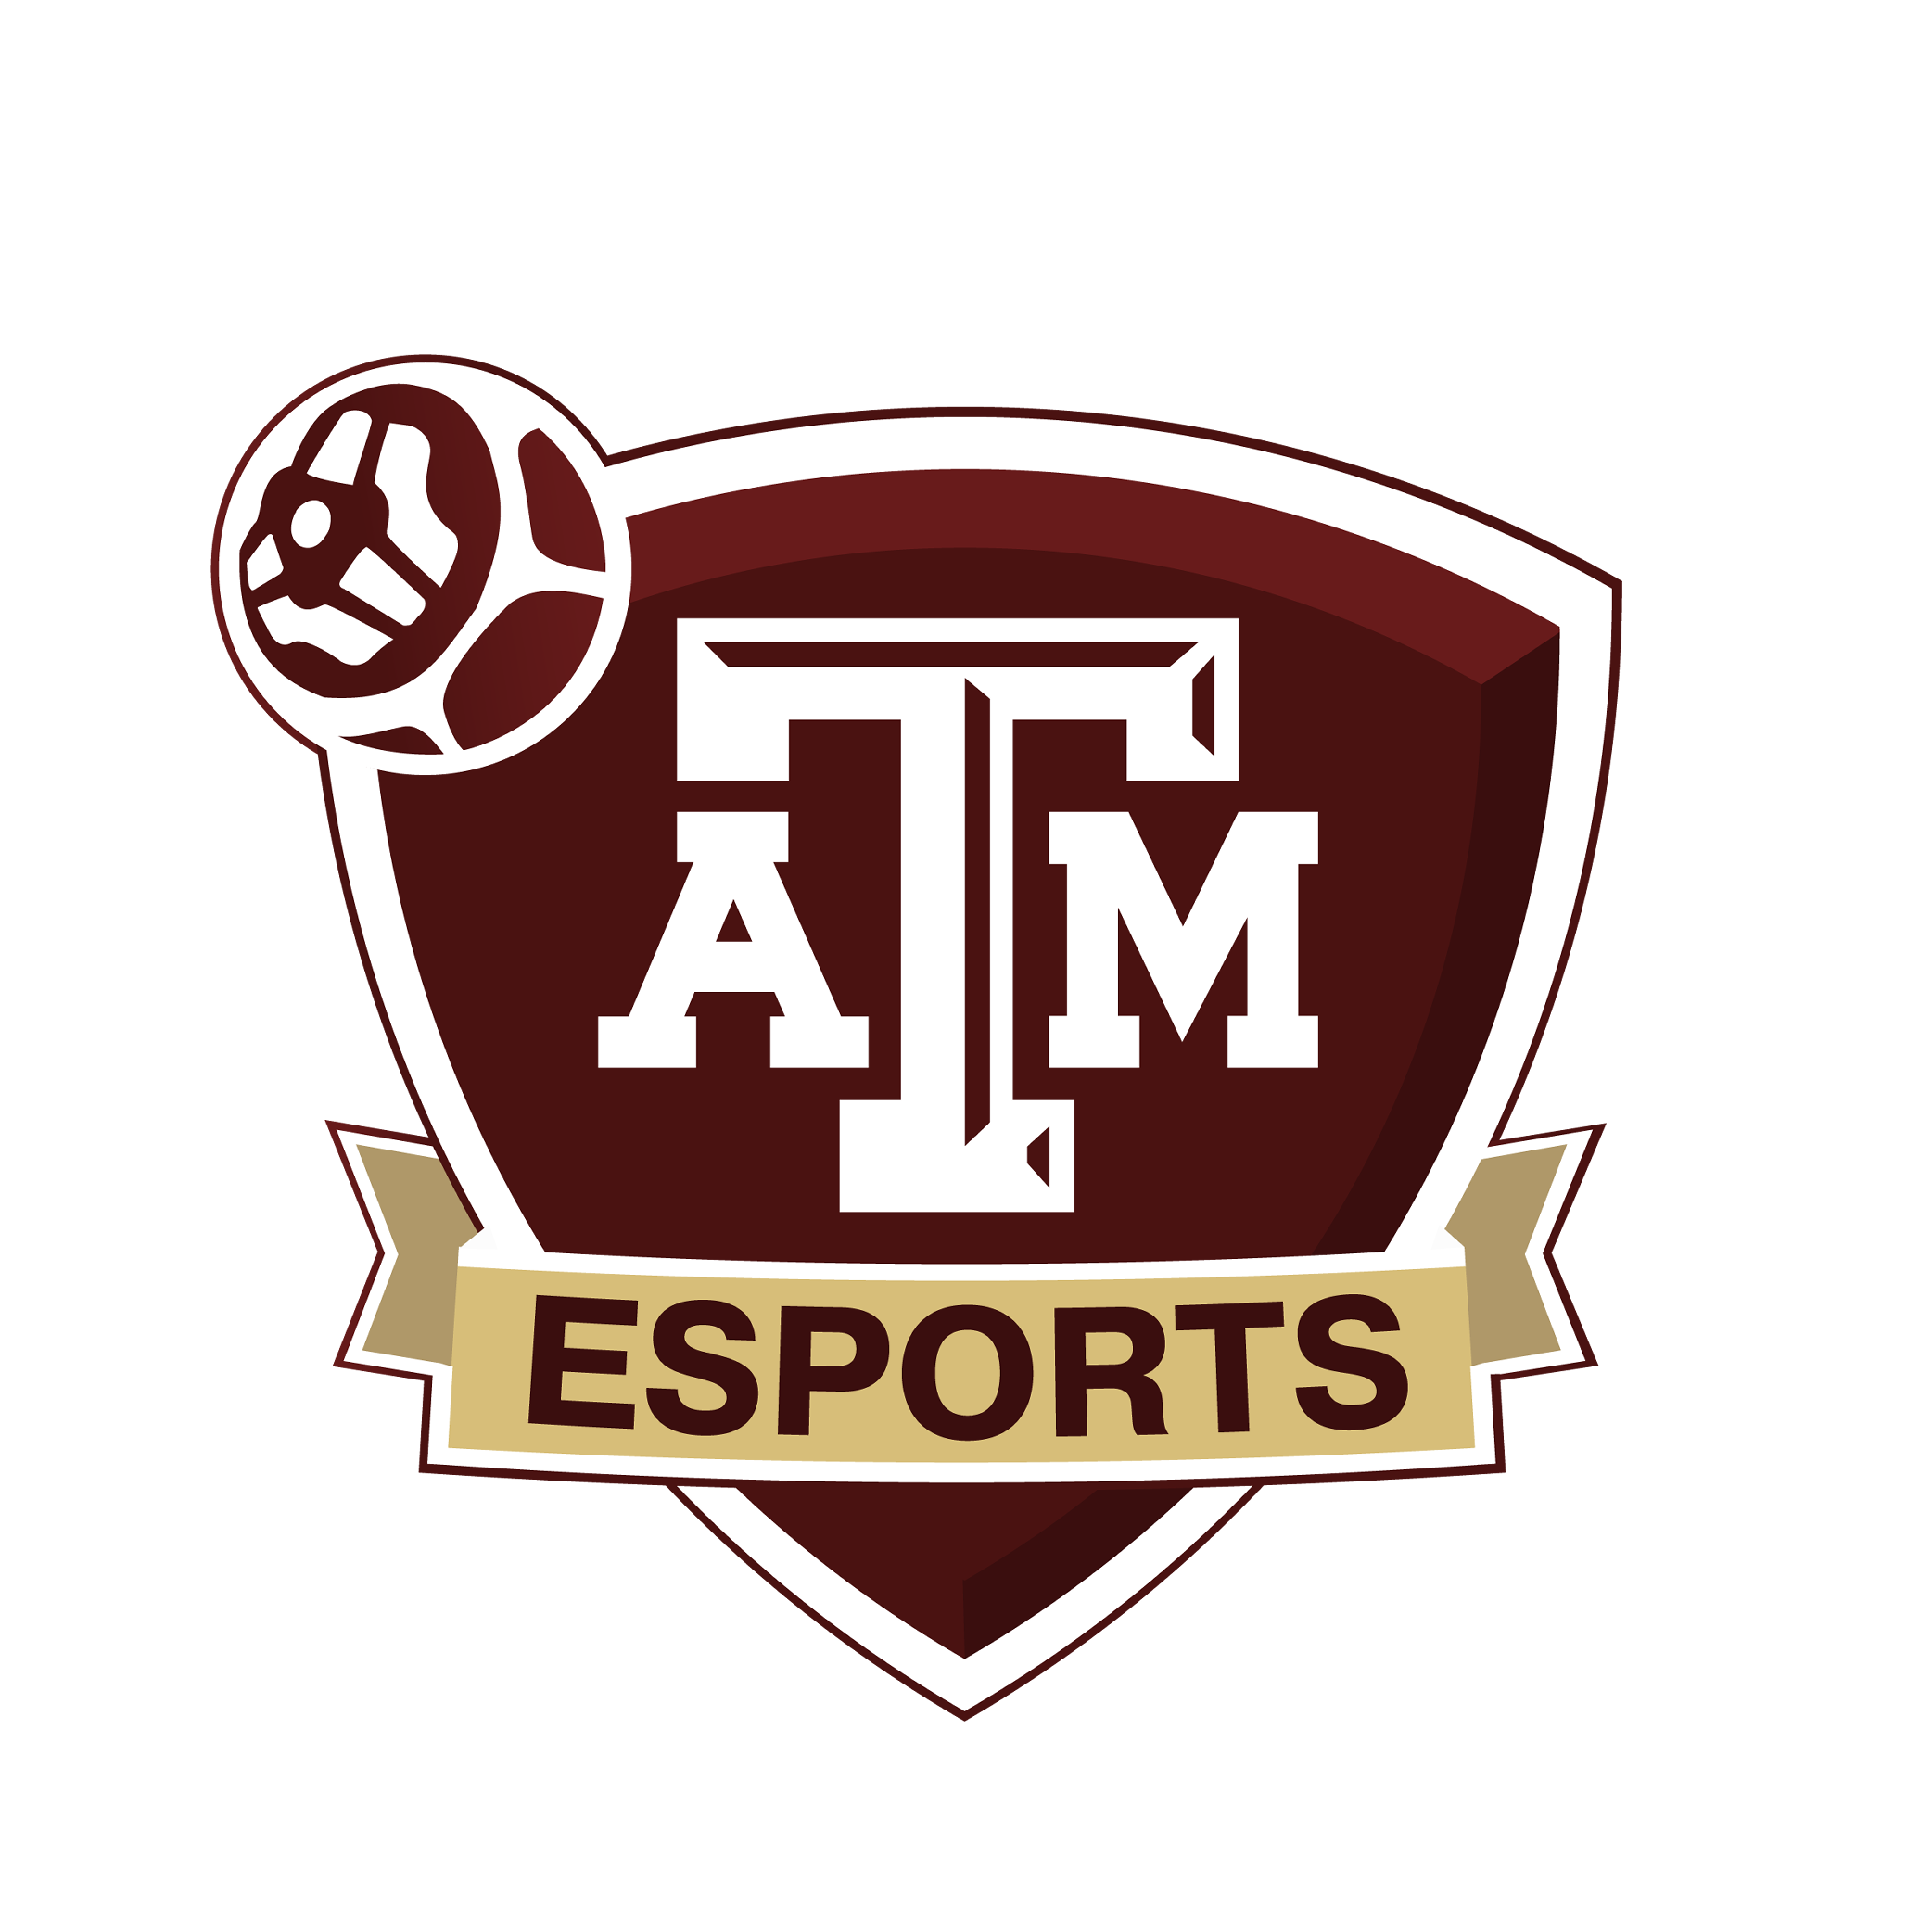 Texas A&M University's logo